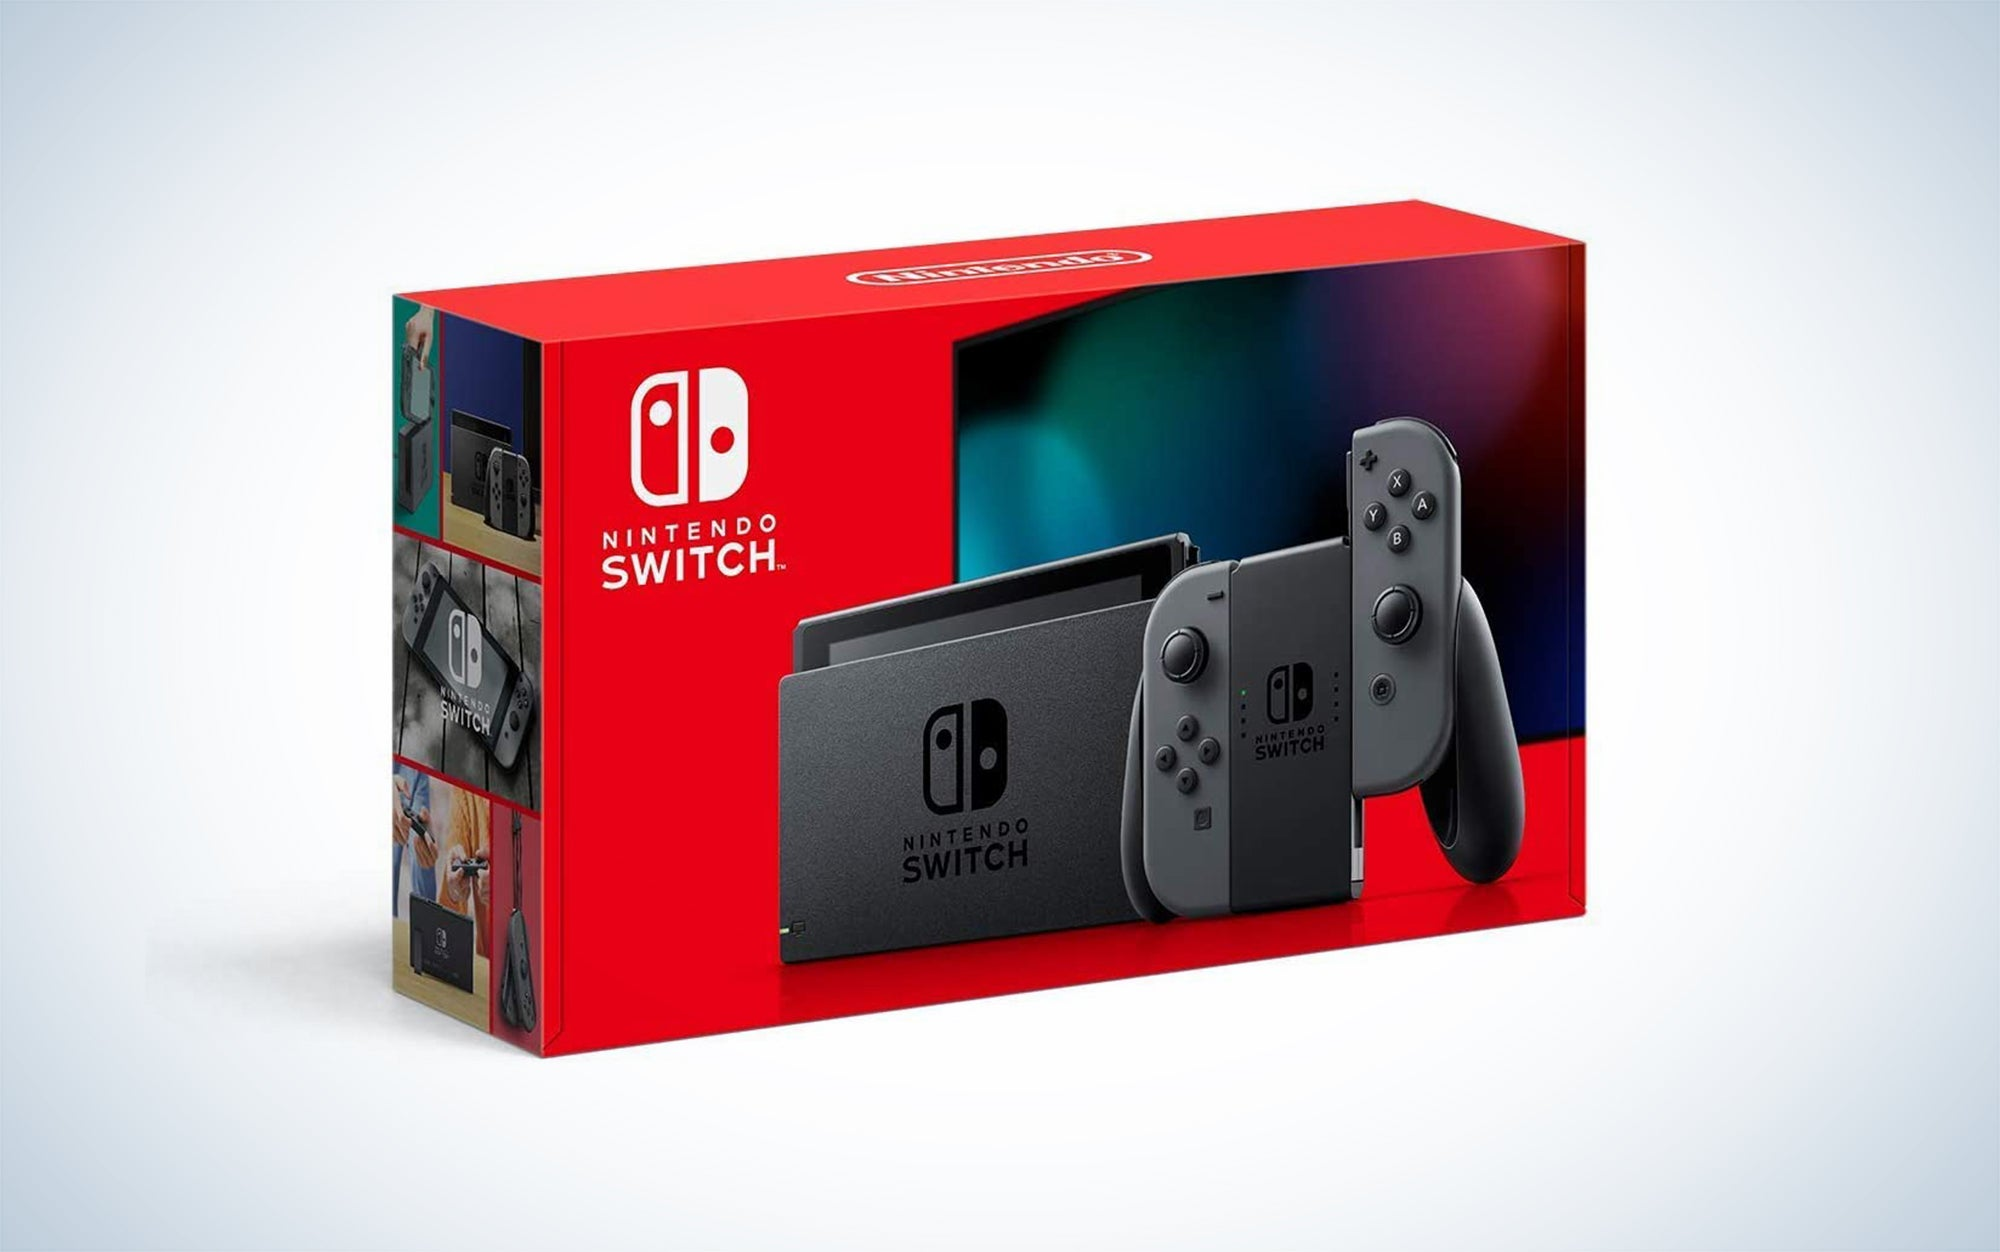 Nintendo Switch console and Nintendo Switch controller.